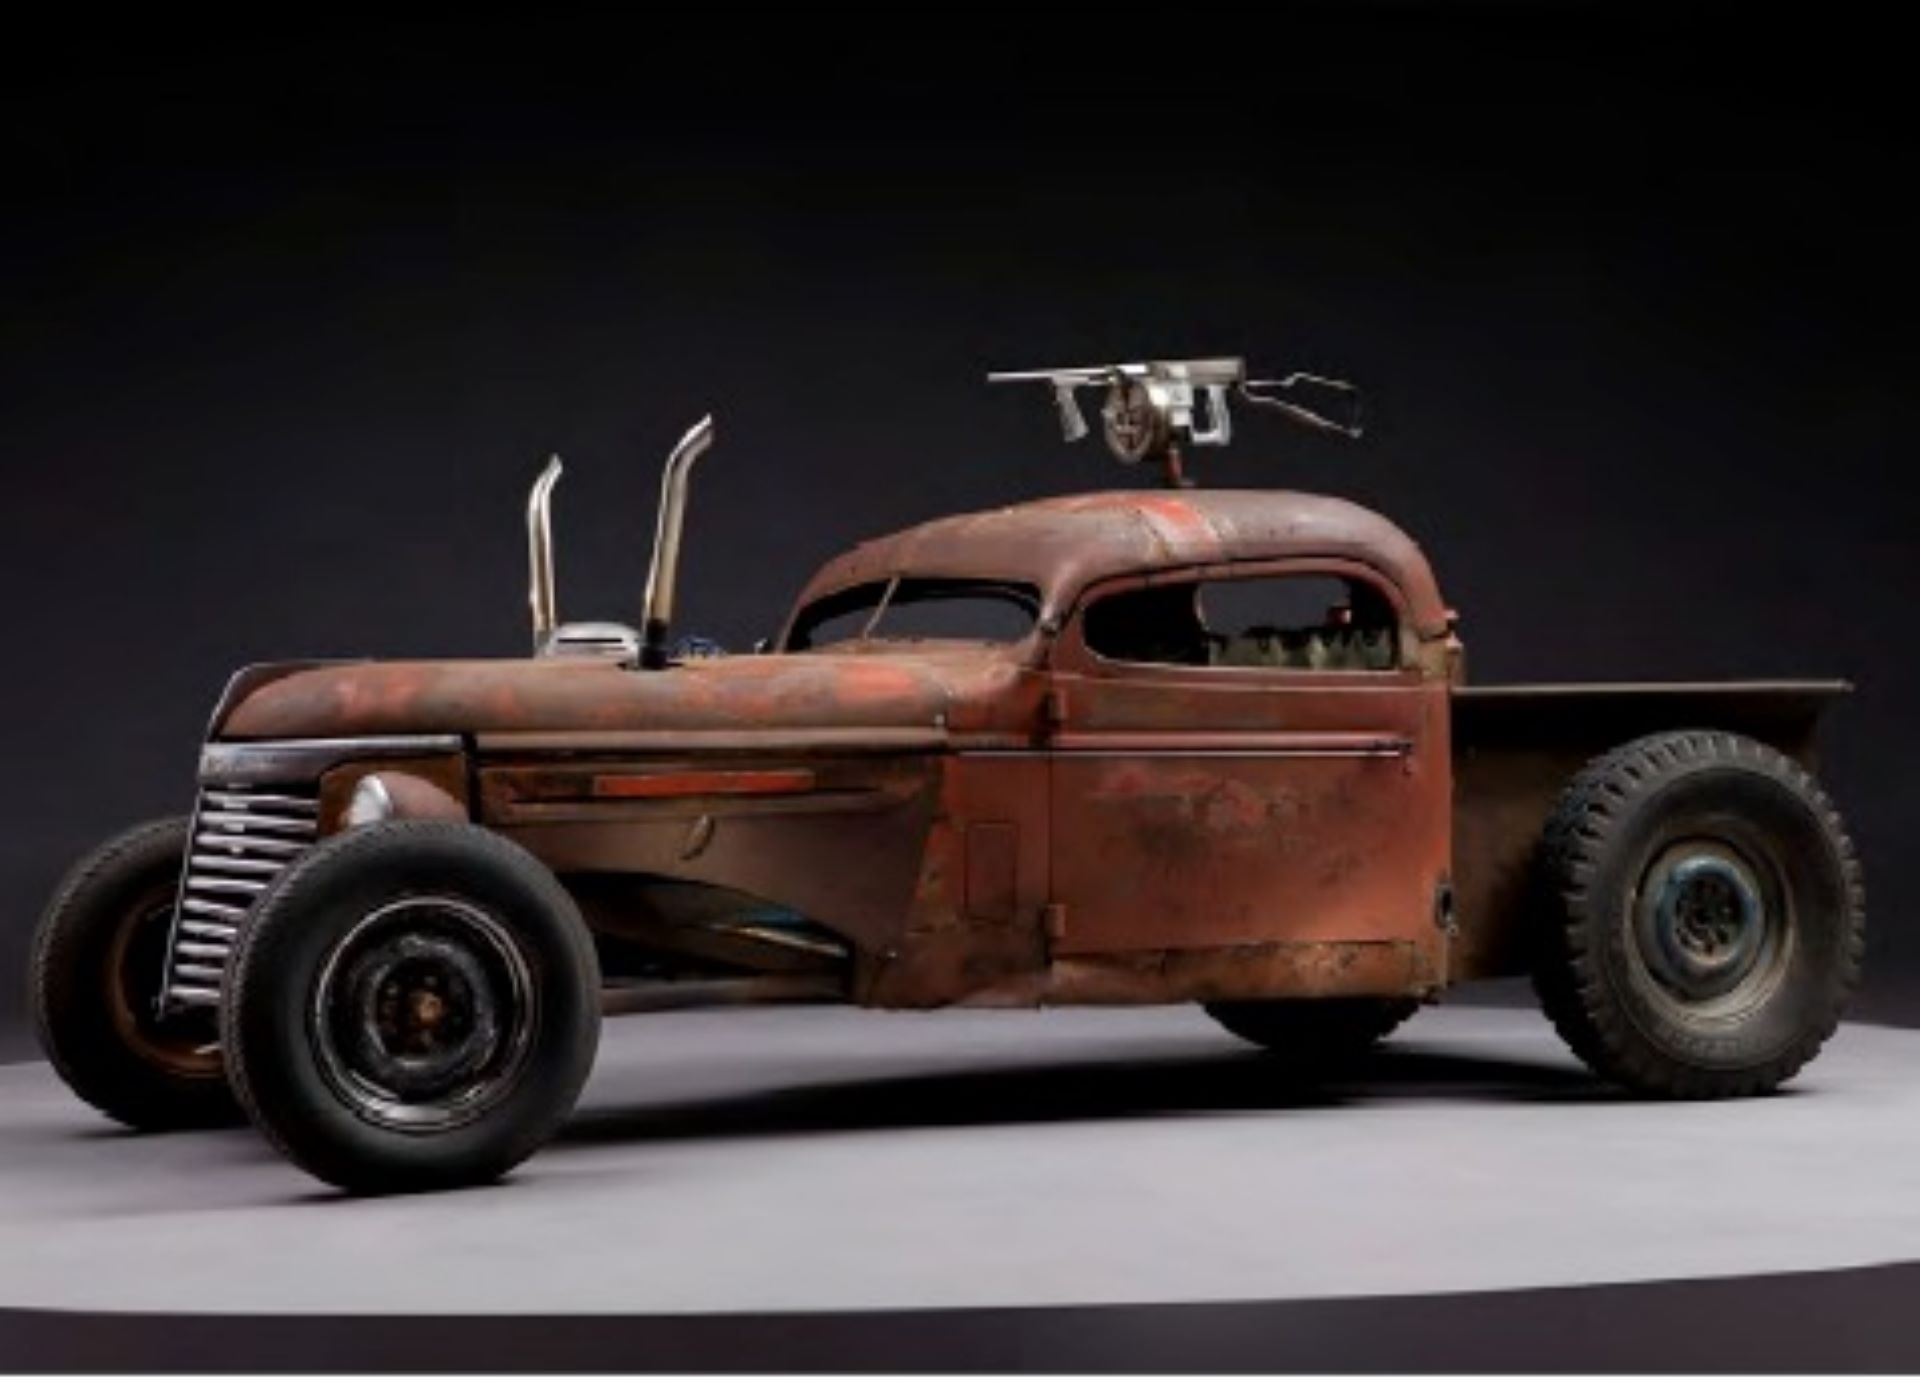 Mad-Max-Fury-Road-cars-for-sale-13